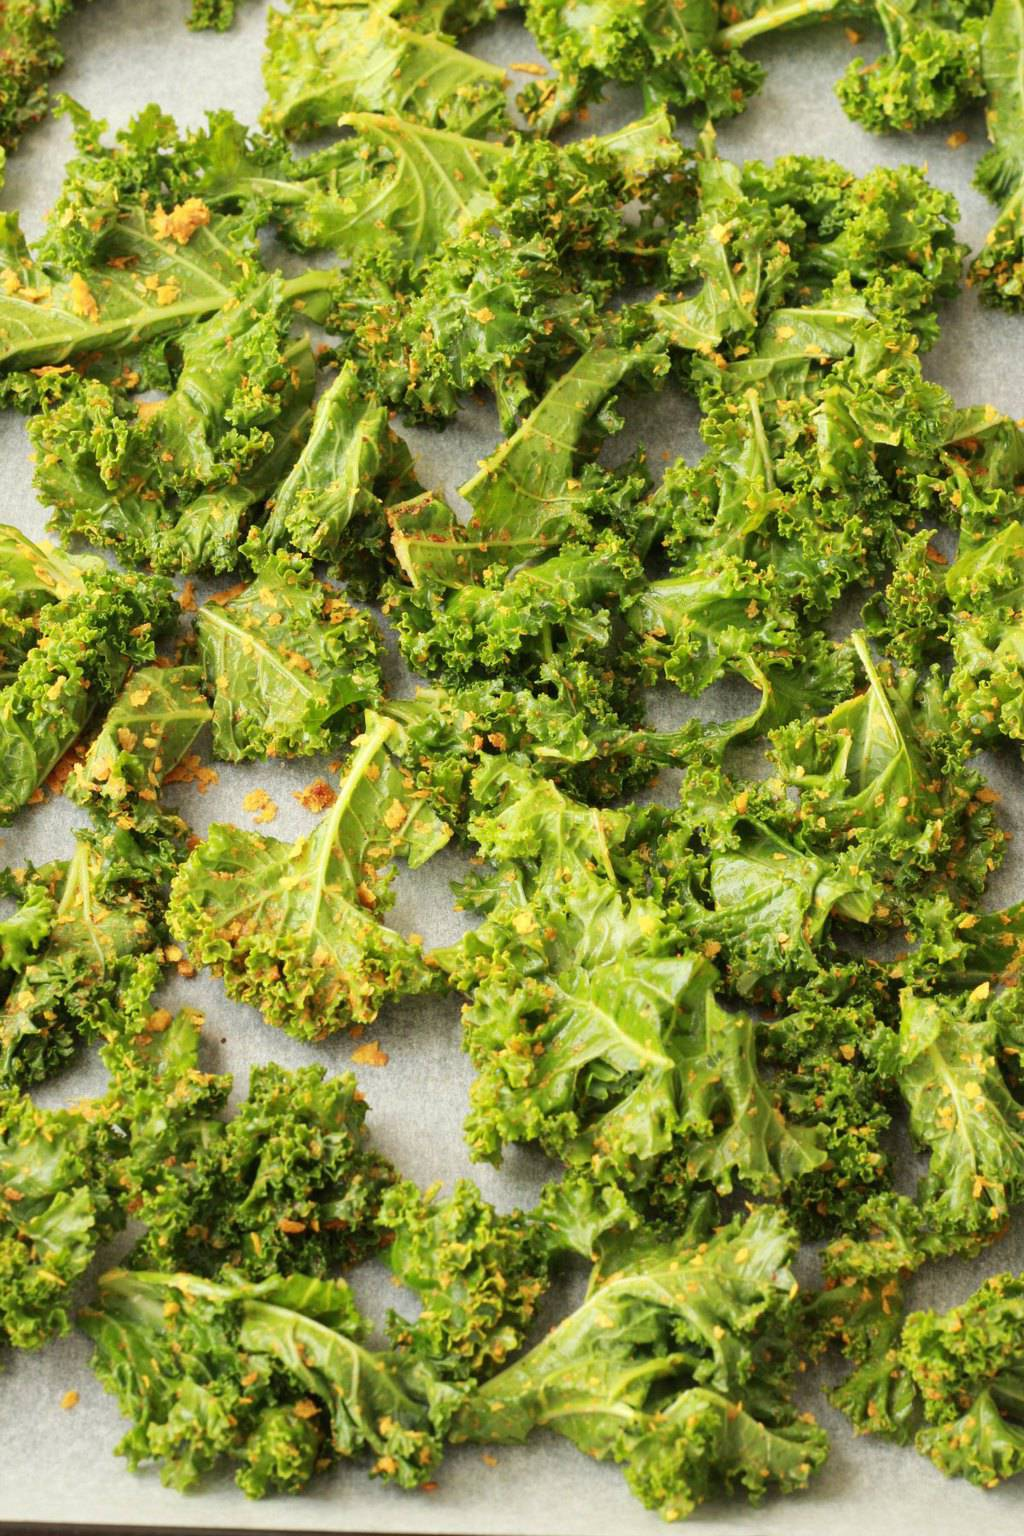 Making Easy Cheesy Kale Chips. Crispy, savory, cheesy and super healthy! #vegan #lovingitvegan #glutenfree #kalechips #snacks